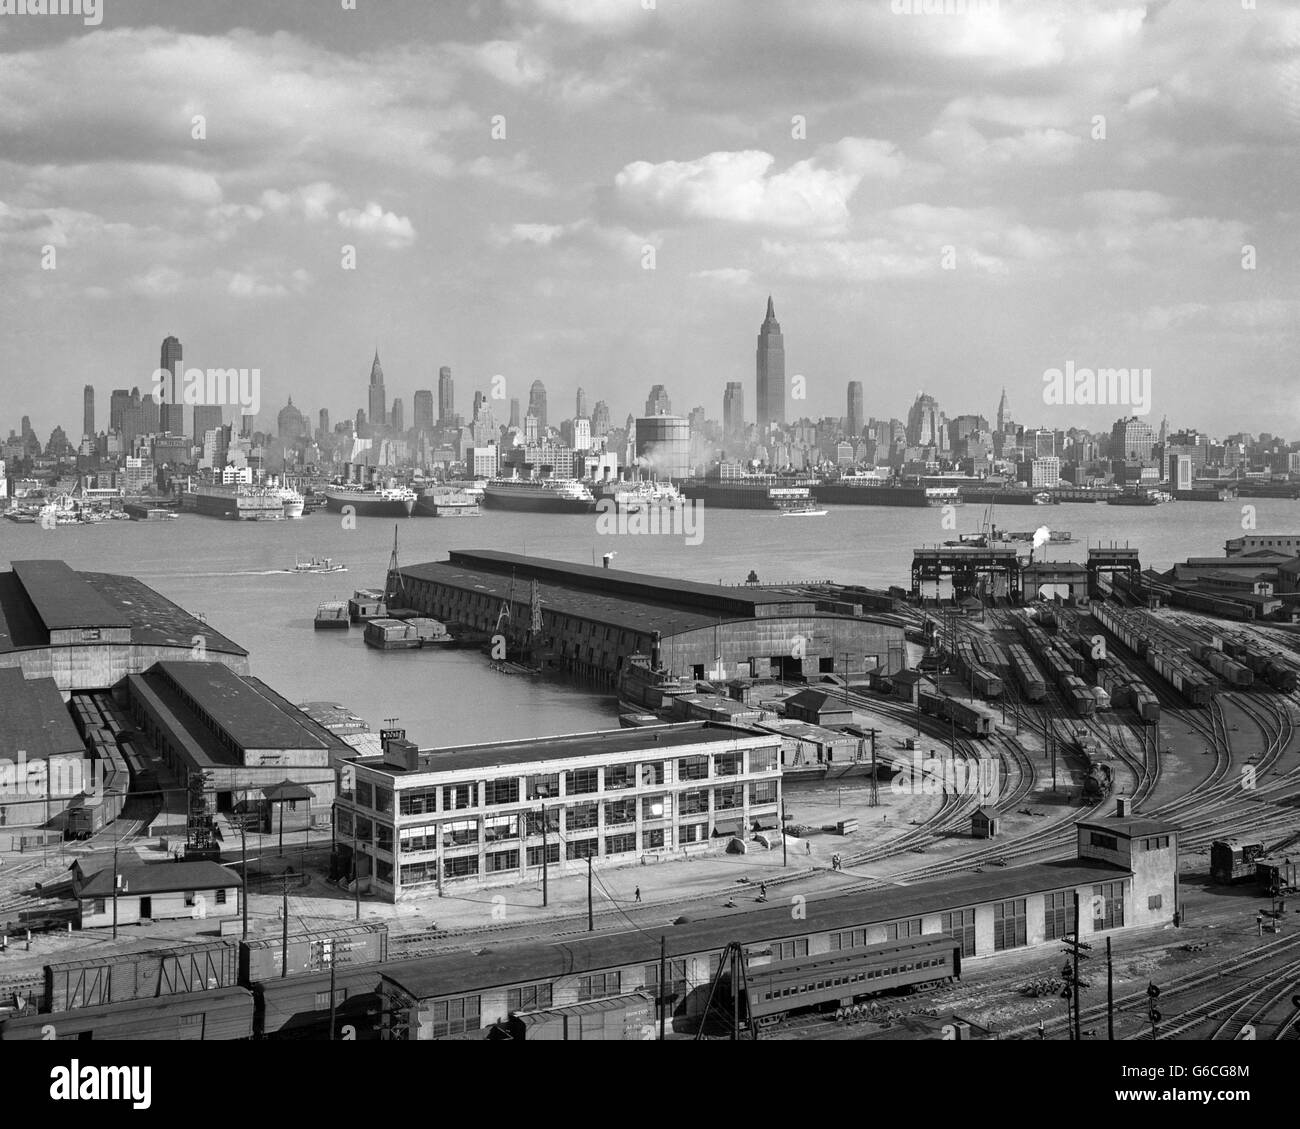 1930s MANHATTAN NYC SKYLINE ROCKEFELLER CENTER TO 14TH STREET AND OCEAN LINERS VIEW FROM WEEHAWKEN NJ USA - Stock Image